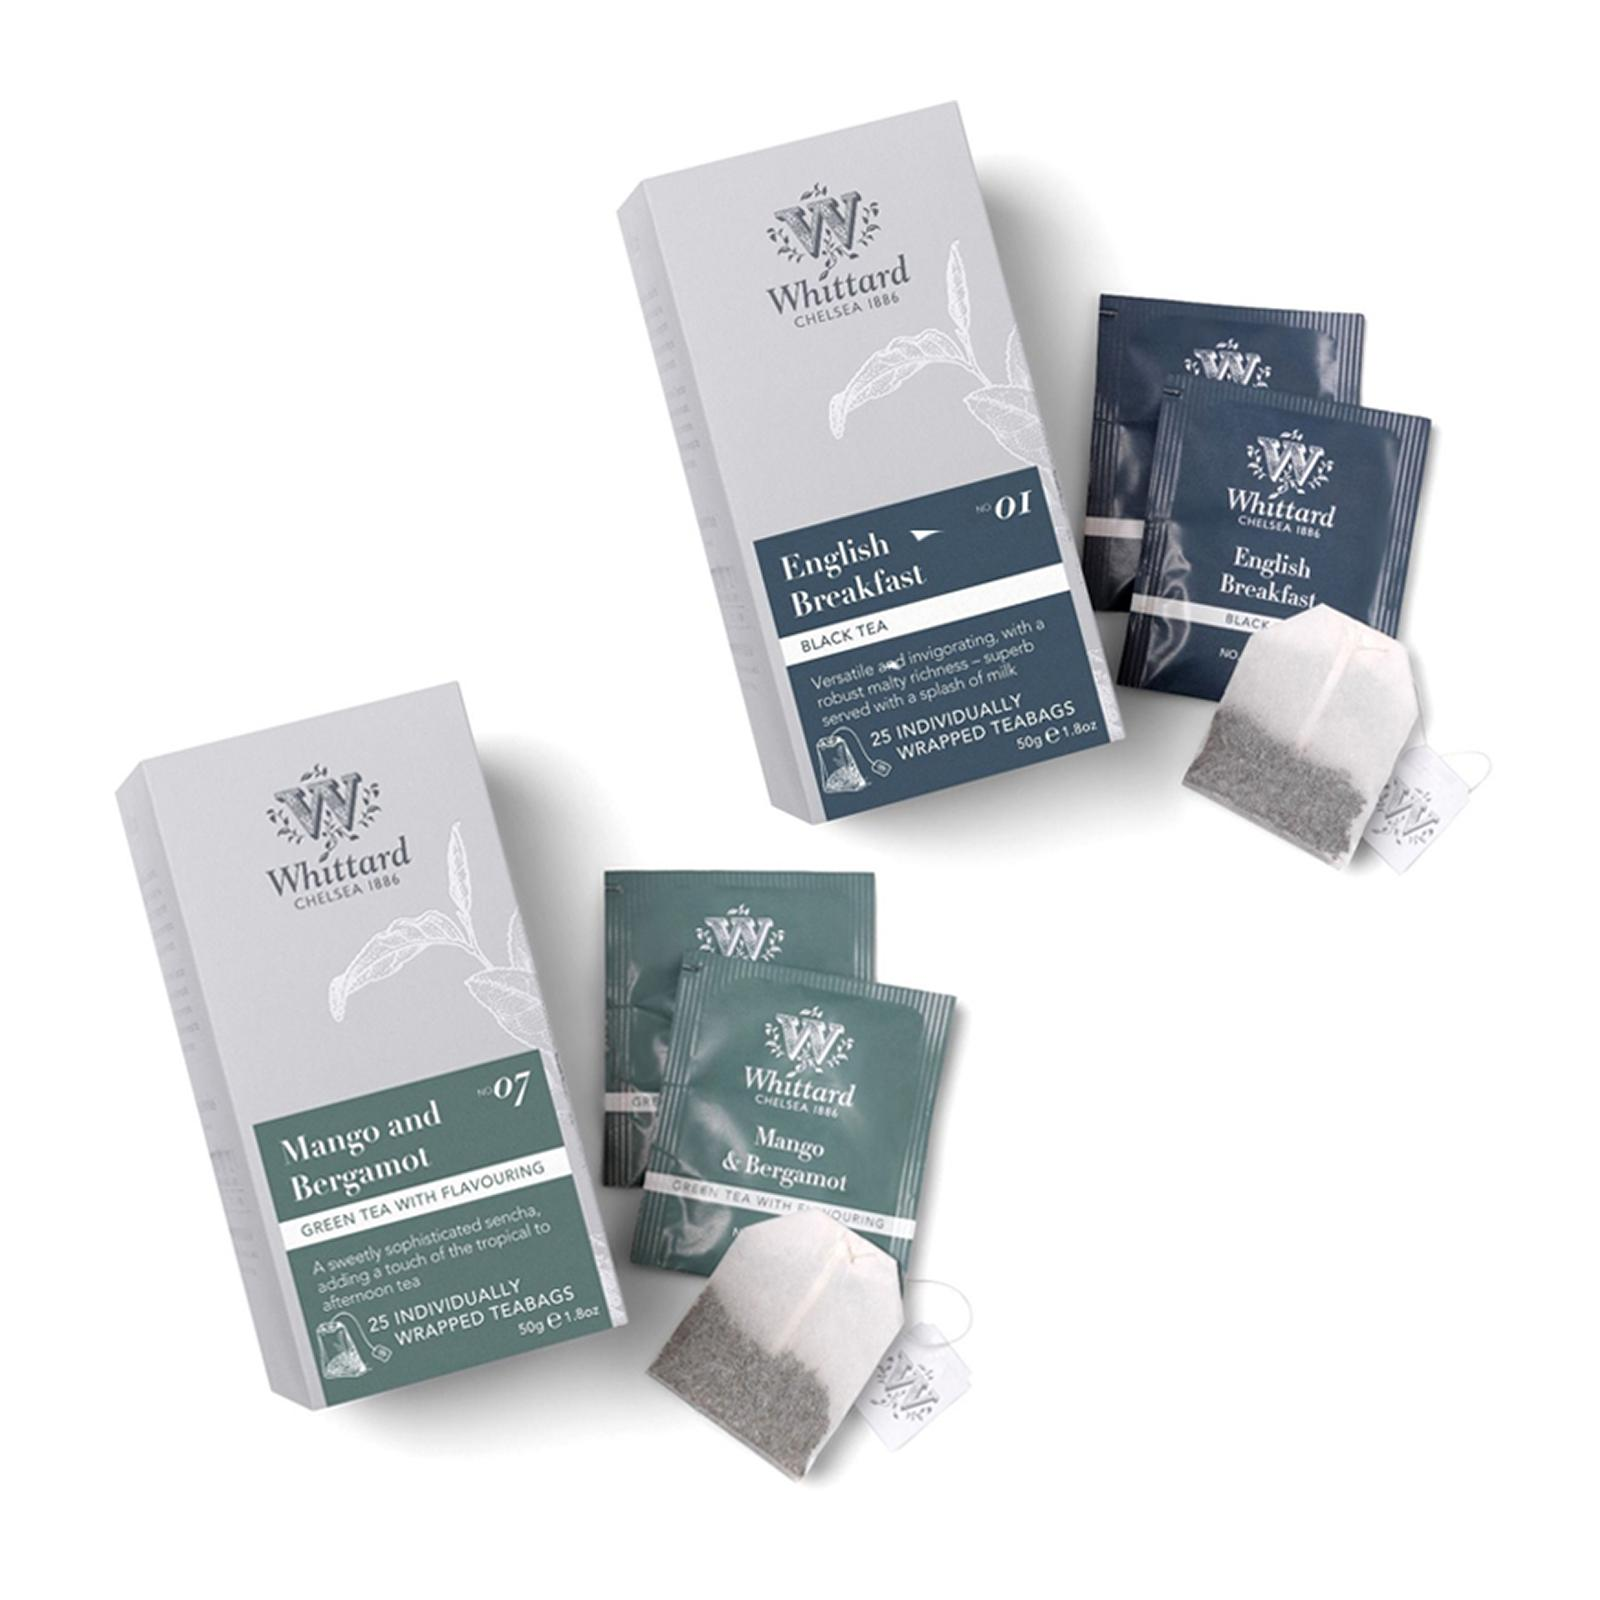 Whittard English Breakfast and Mango And Bergamot 25 Individually Wrapped Teabags